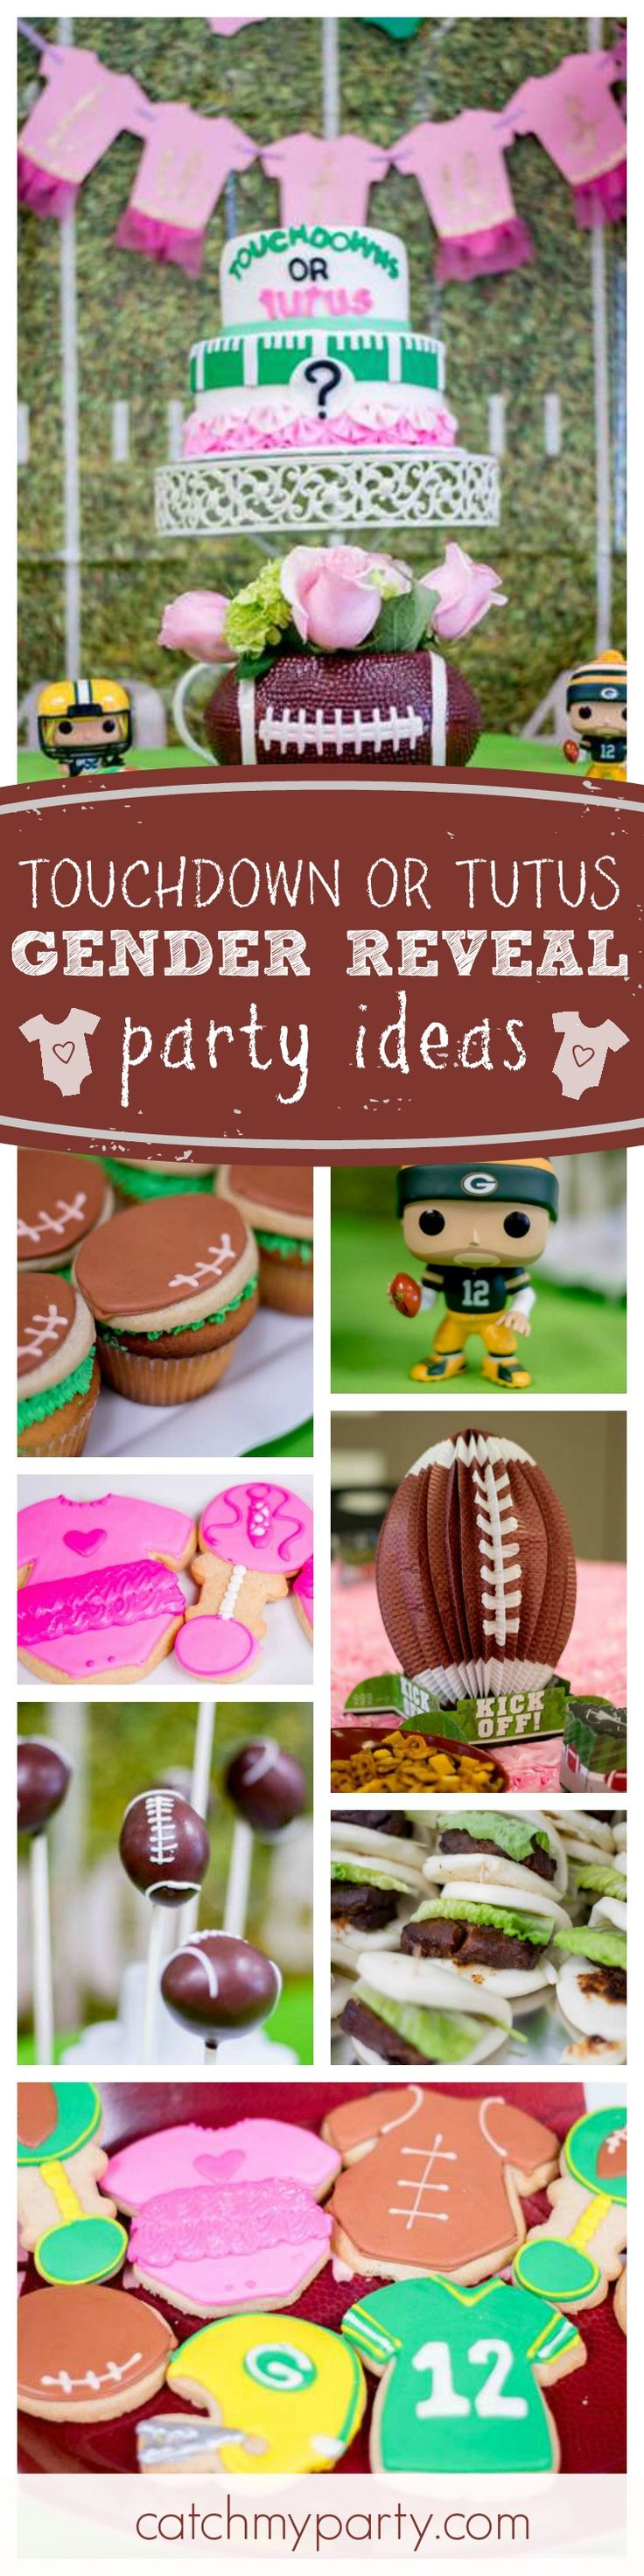 Check out this fantastic Touchdown or Tutus Gender Reveal party! Love the football cake pops!! See more party ideas and share yours at CatchMyParty.com